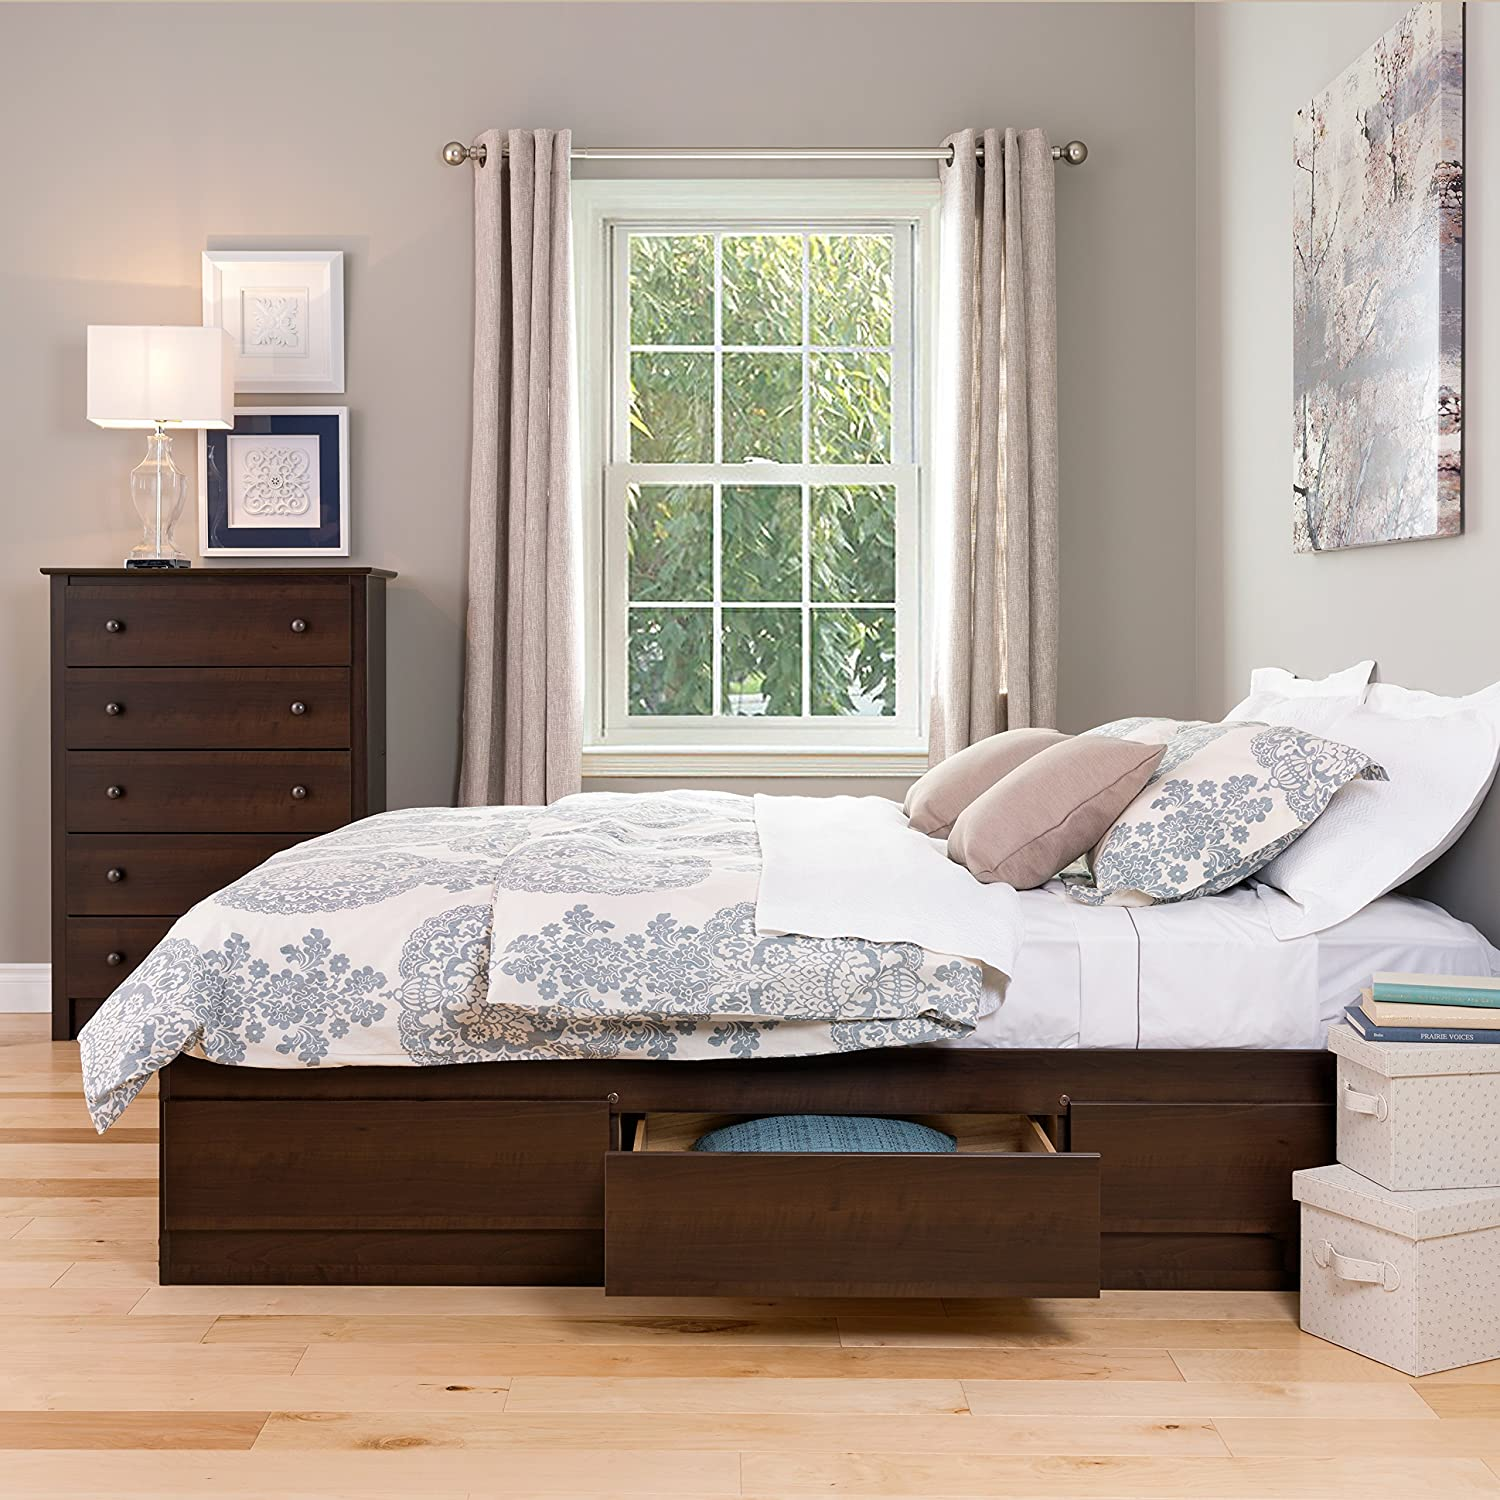 boston threshold by designs with width height trim drawers queen brownstone b products furniture storage item bed napa beds